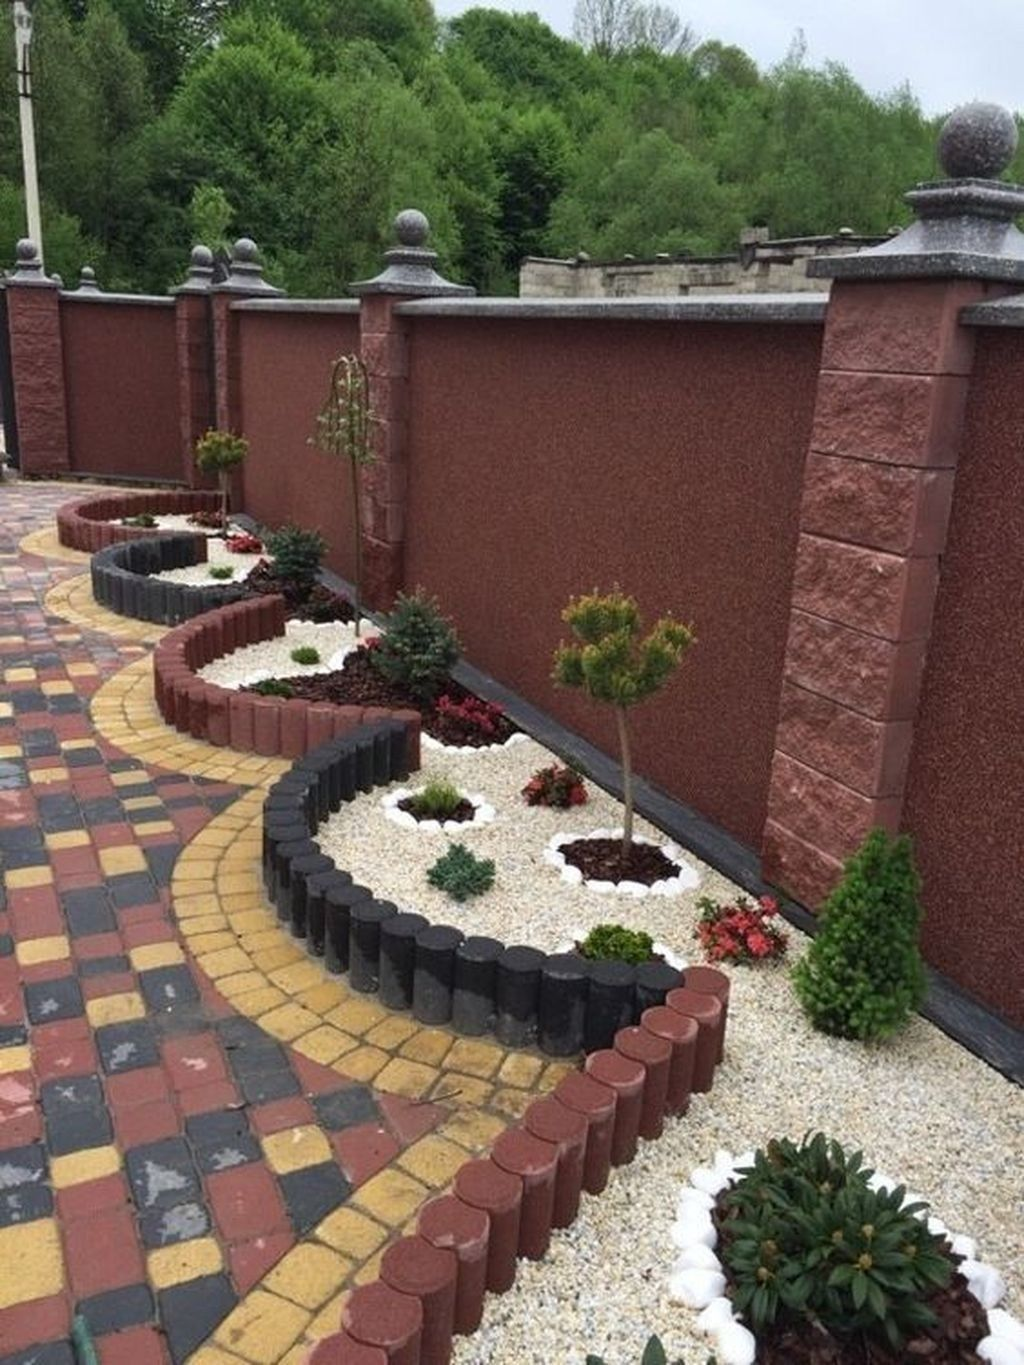 30 Finest Gravel Landscaping For Backyard Gravel Landscaping Backyard Landscaping Patio Landscaping